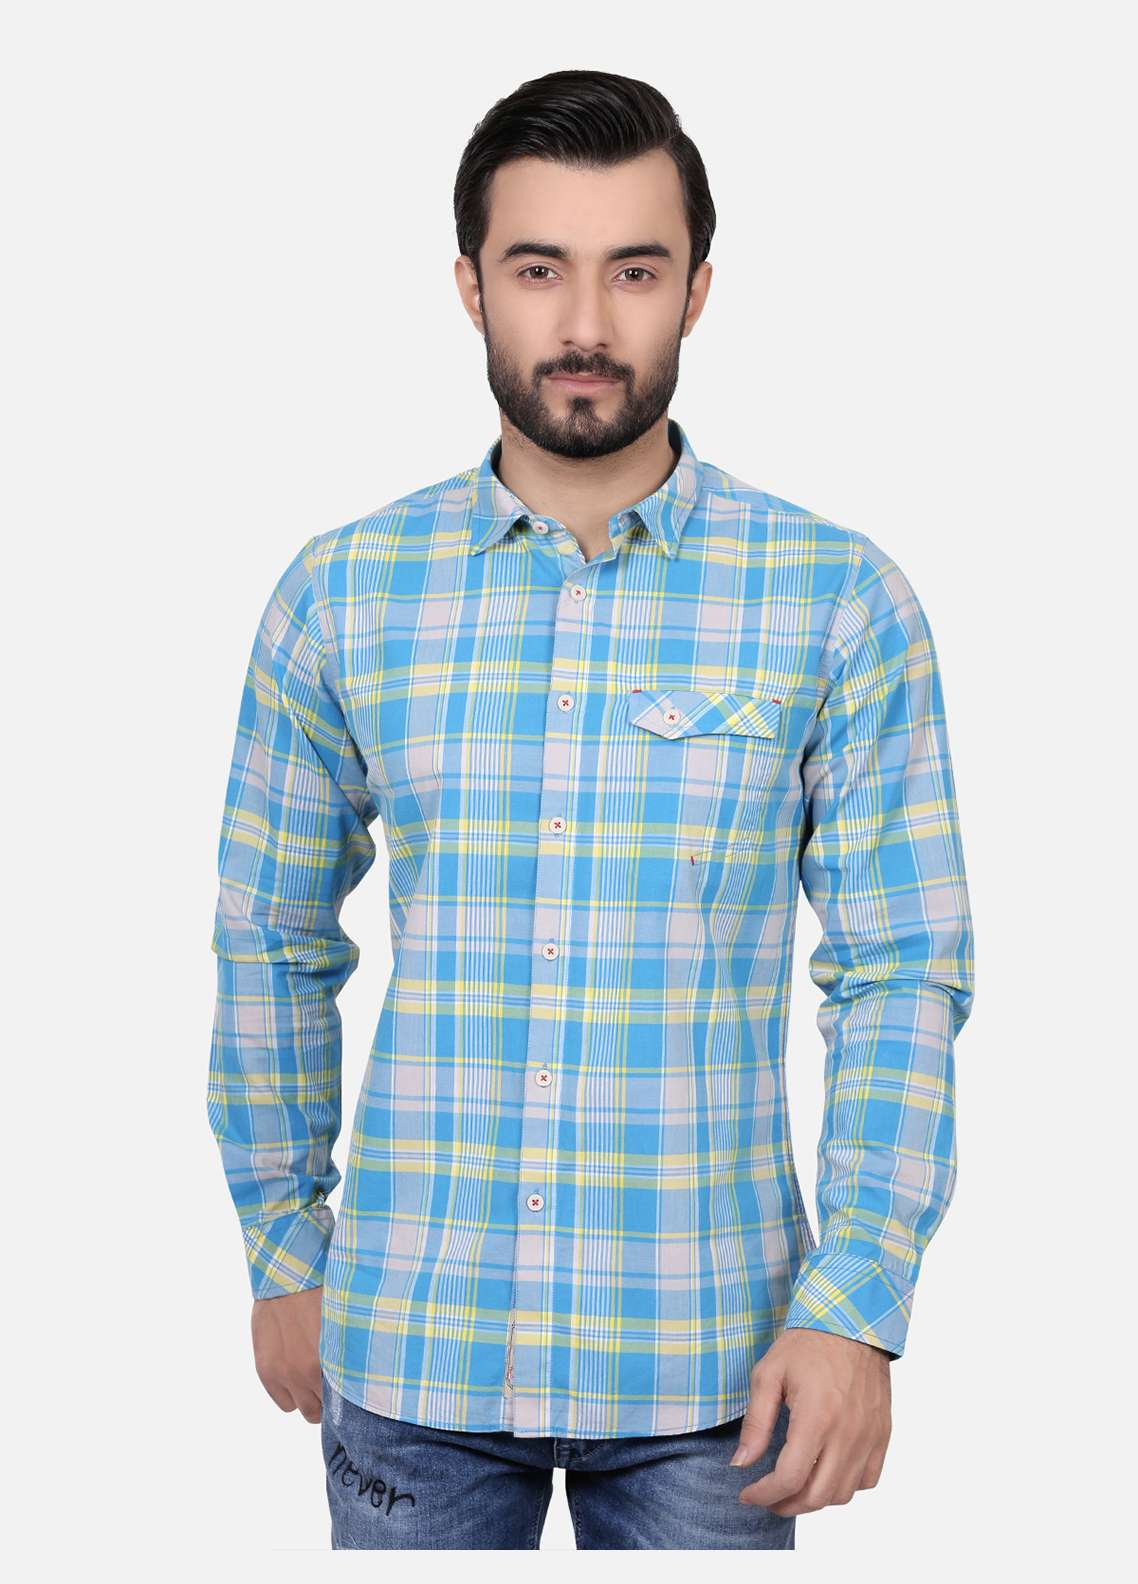 Furor  Casual Shirts for Men - Royal Blue FRM18CS 31118